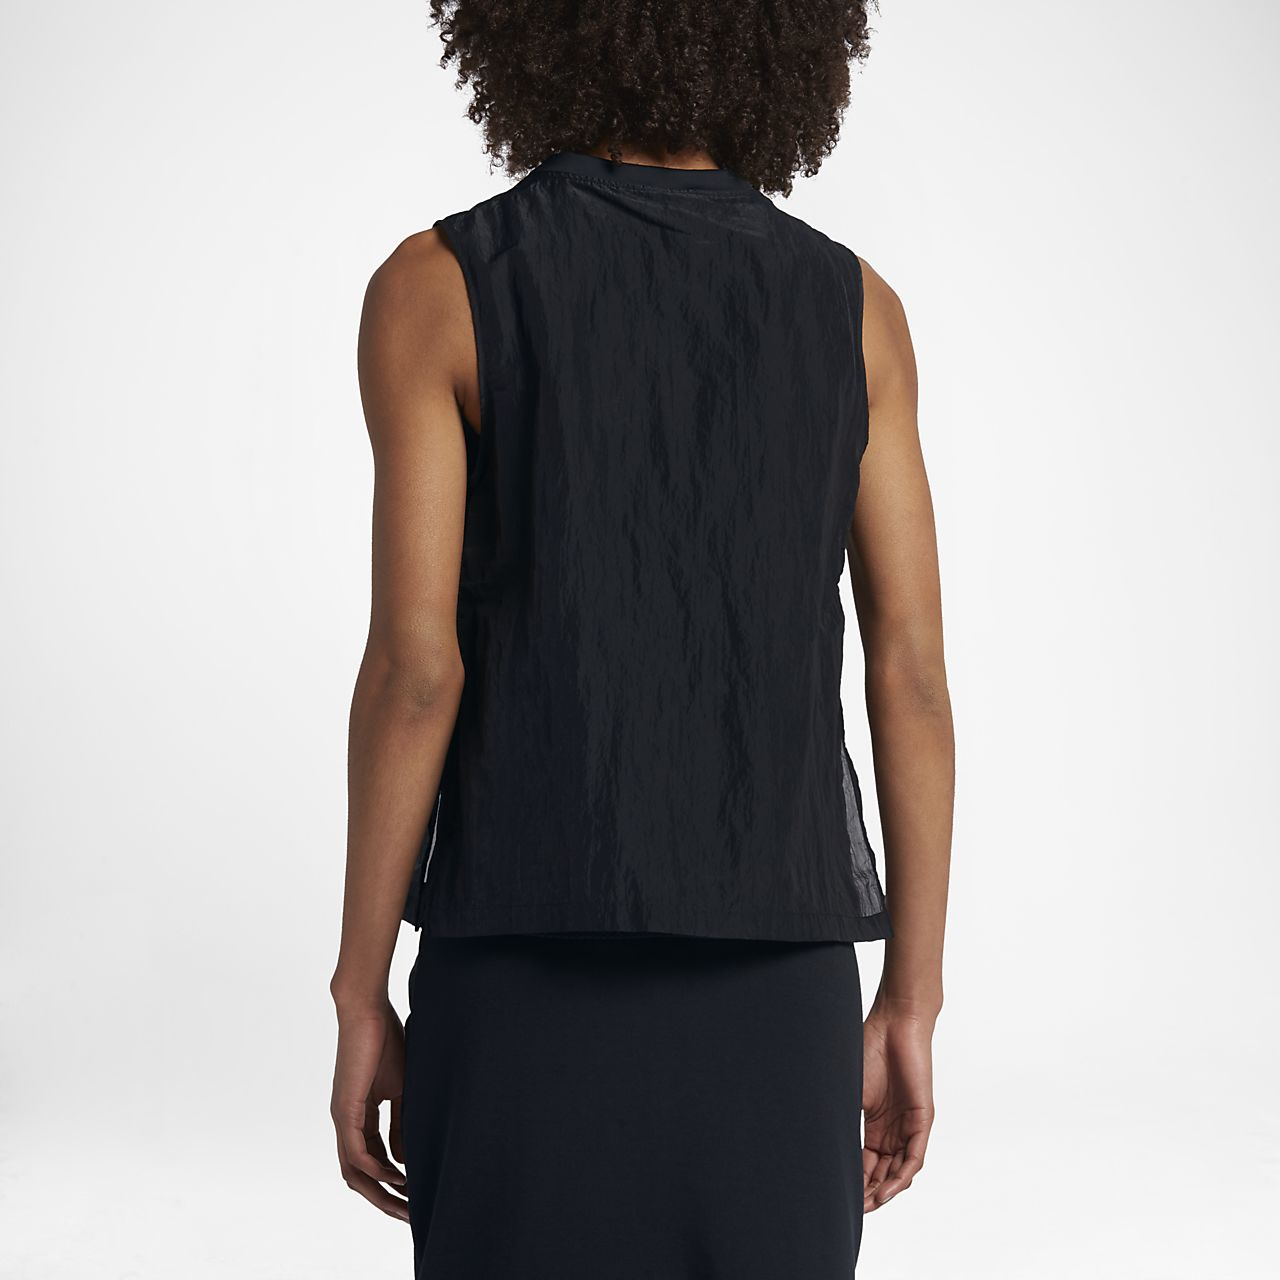 ... Nike Sportswear Tech Hypermesh Women's Tank